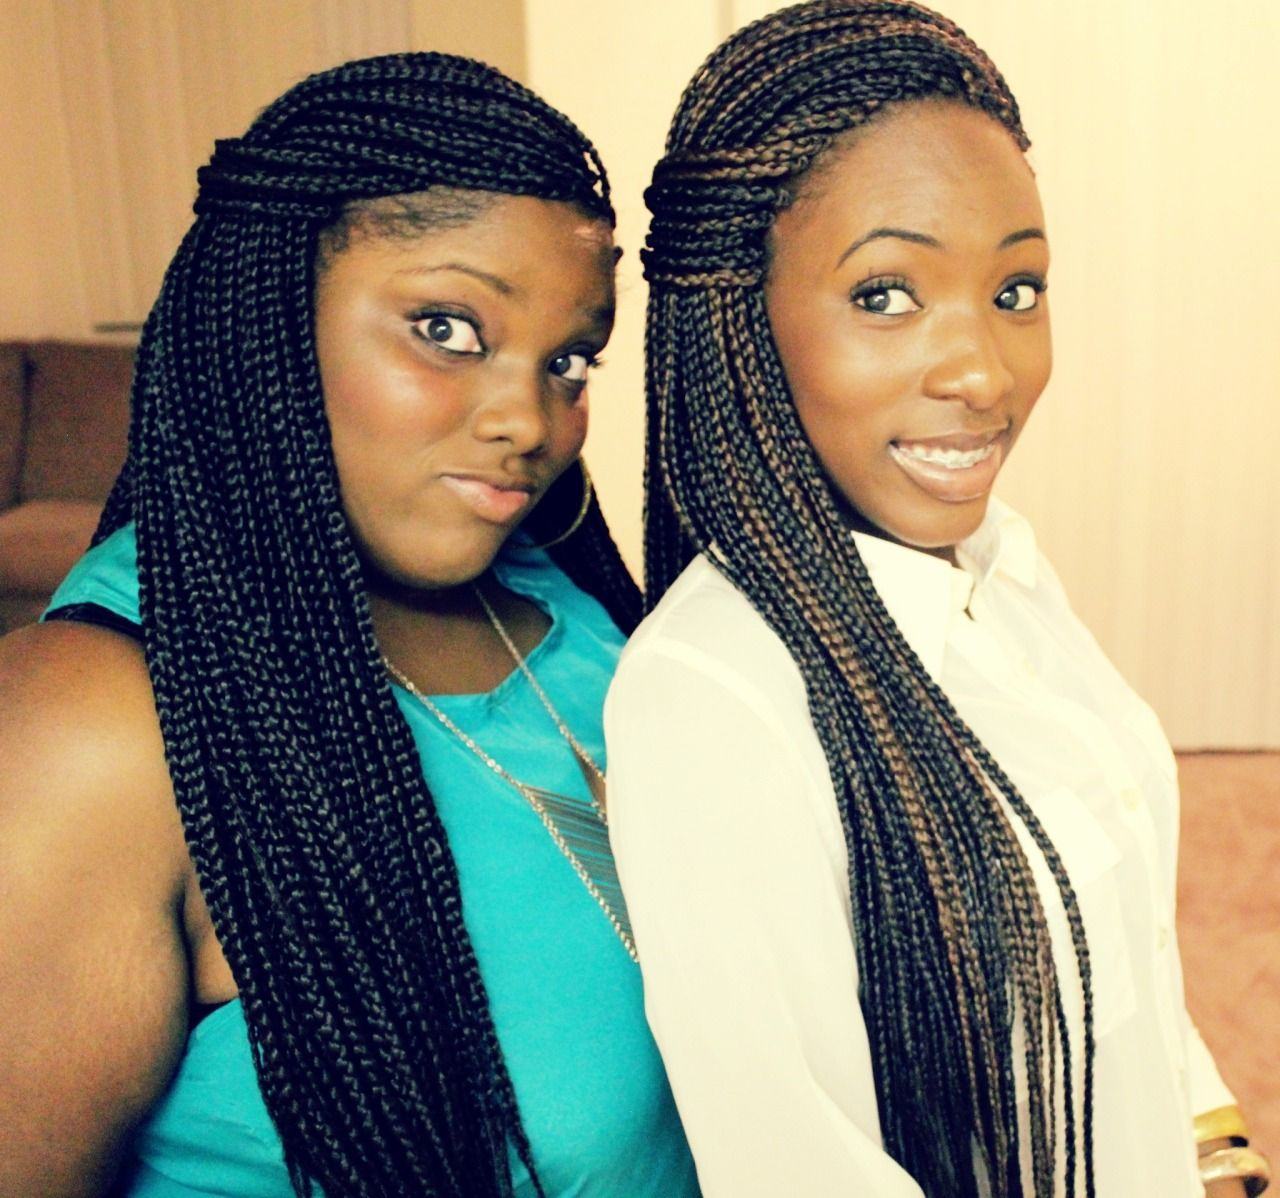 Chicks senegalese babes